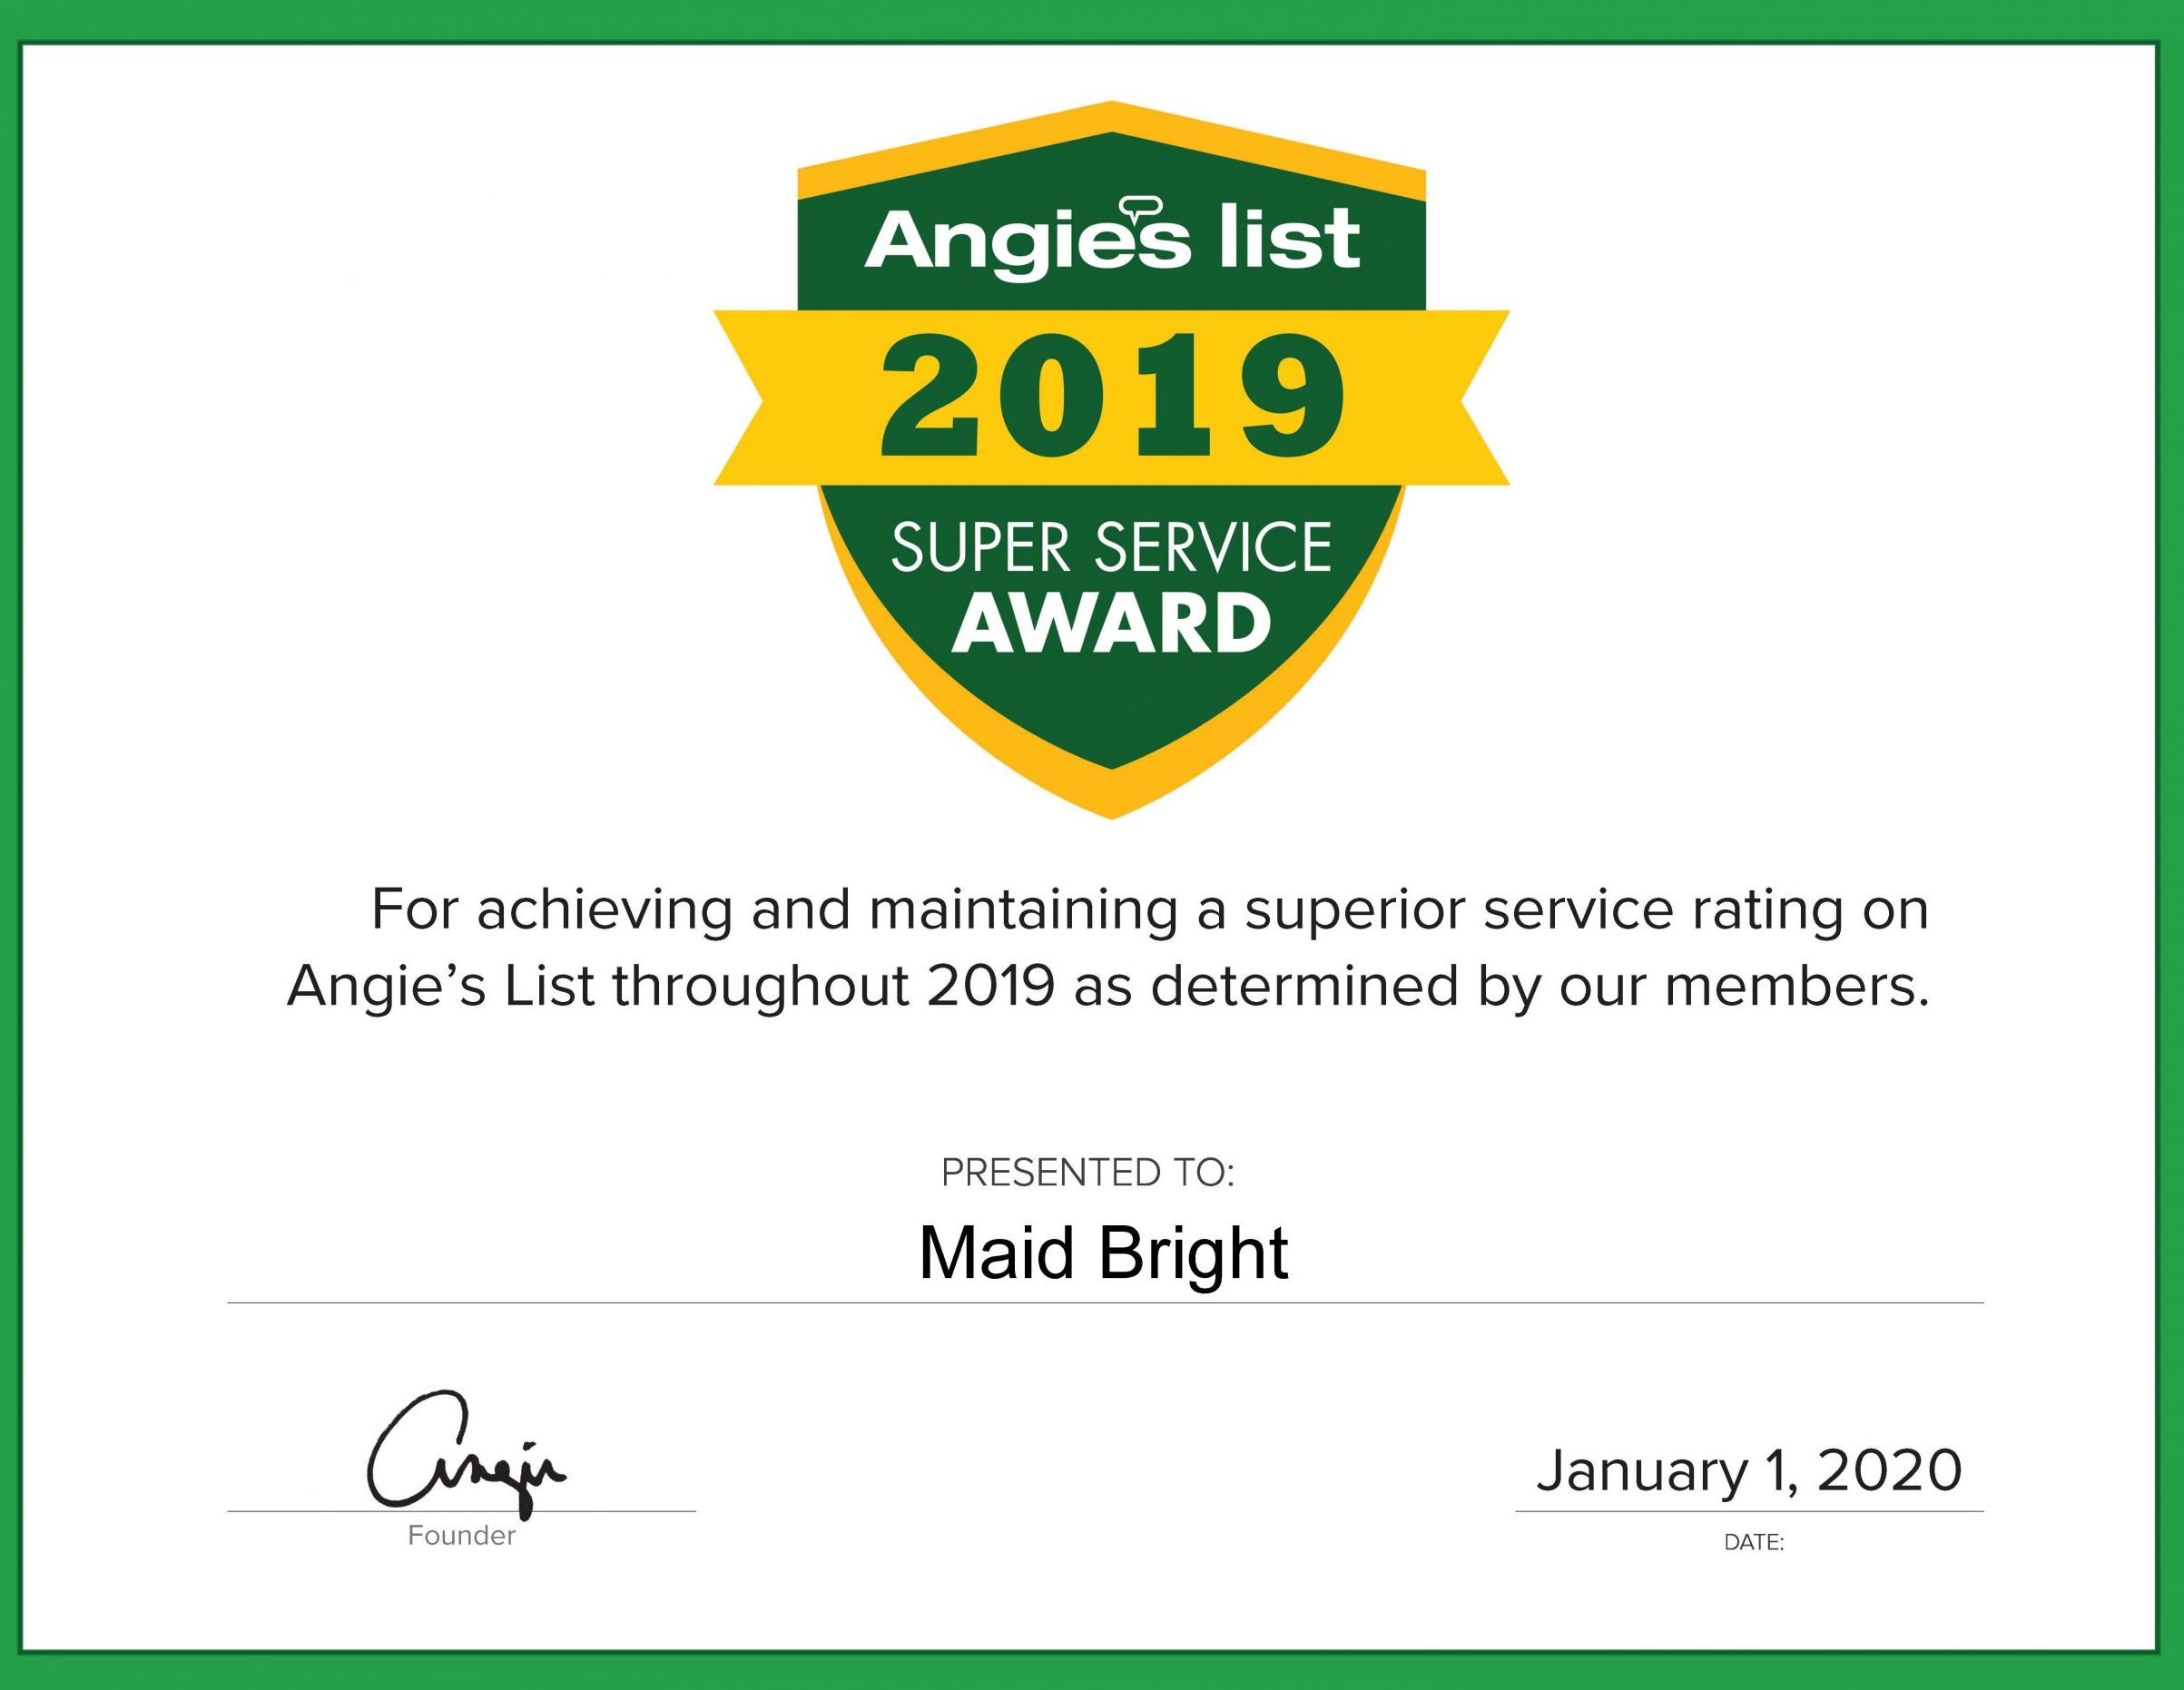 Maid Bright 2019 Super Service Award